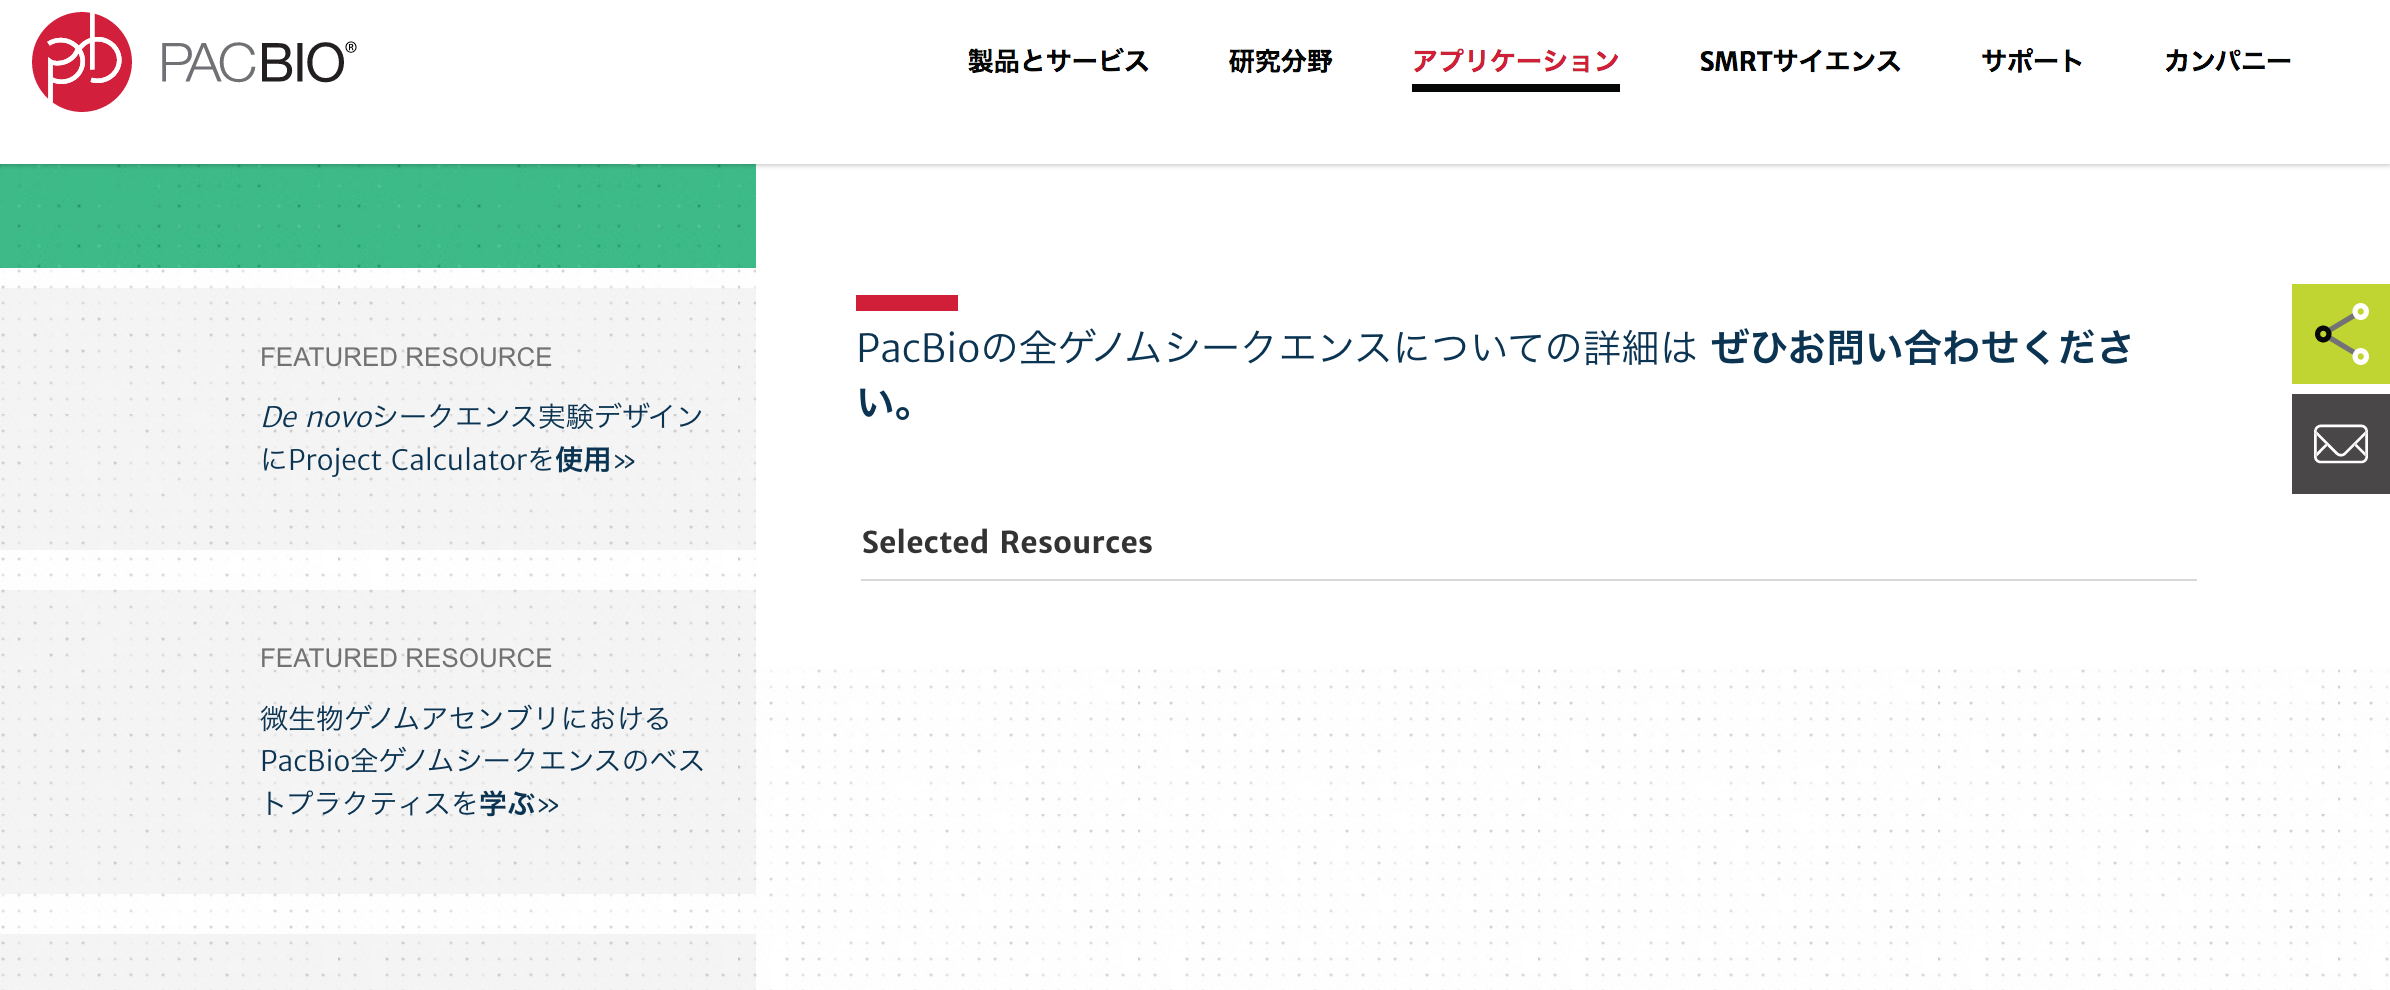 Japanese Page without Publications.png